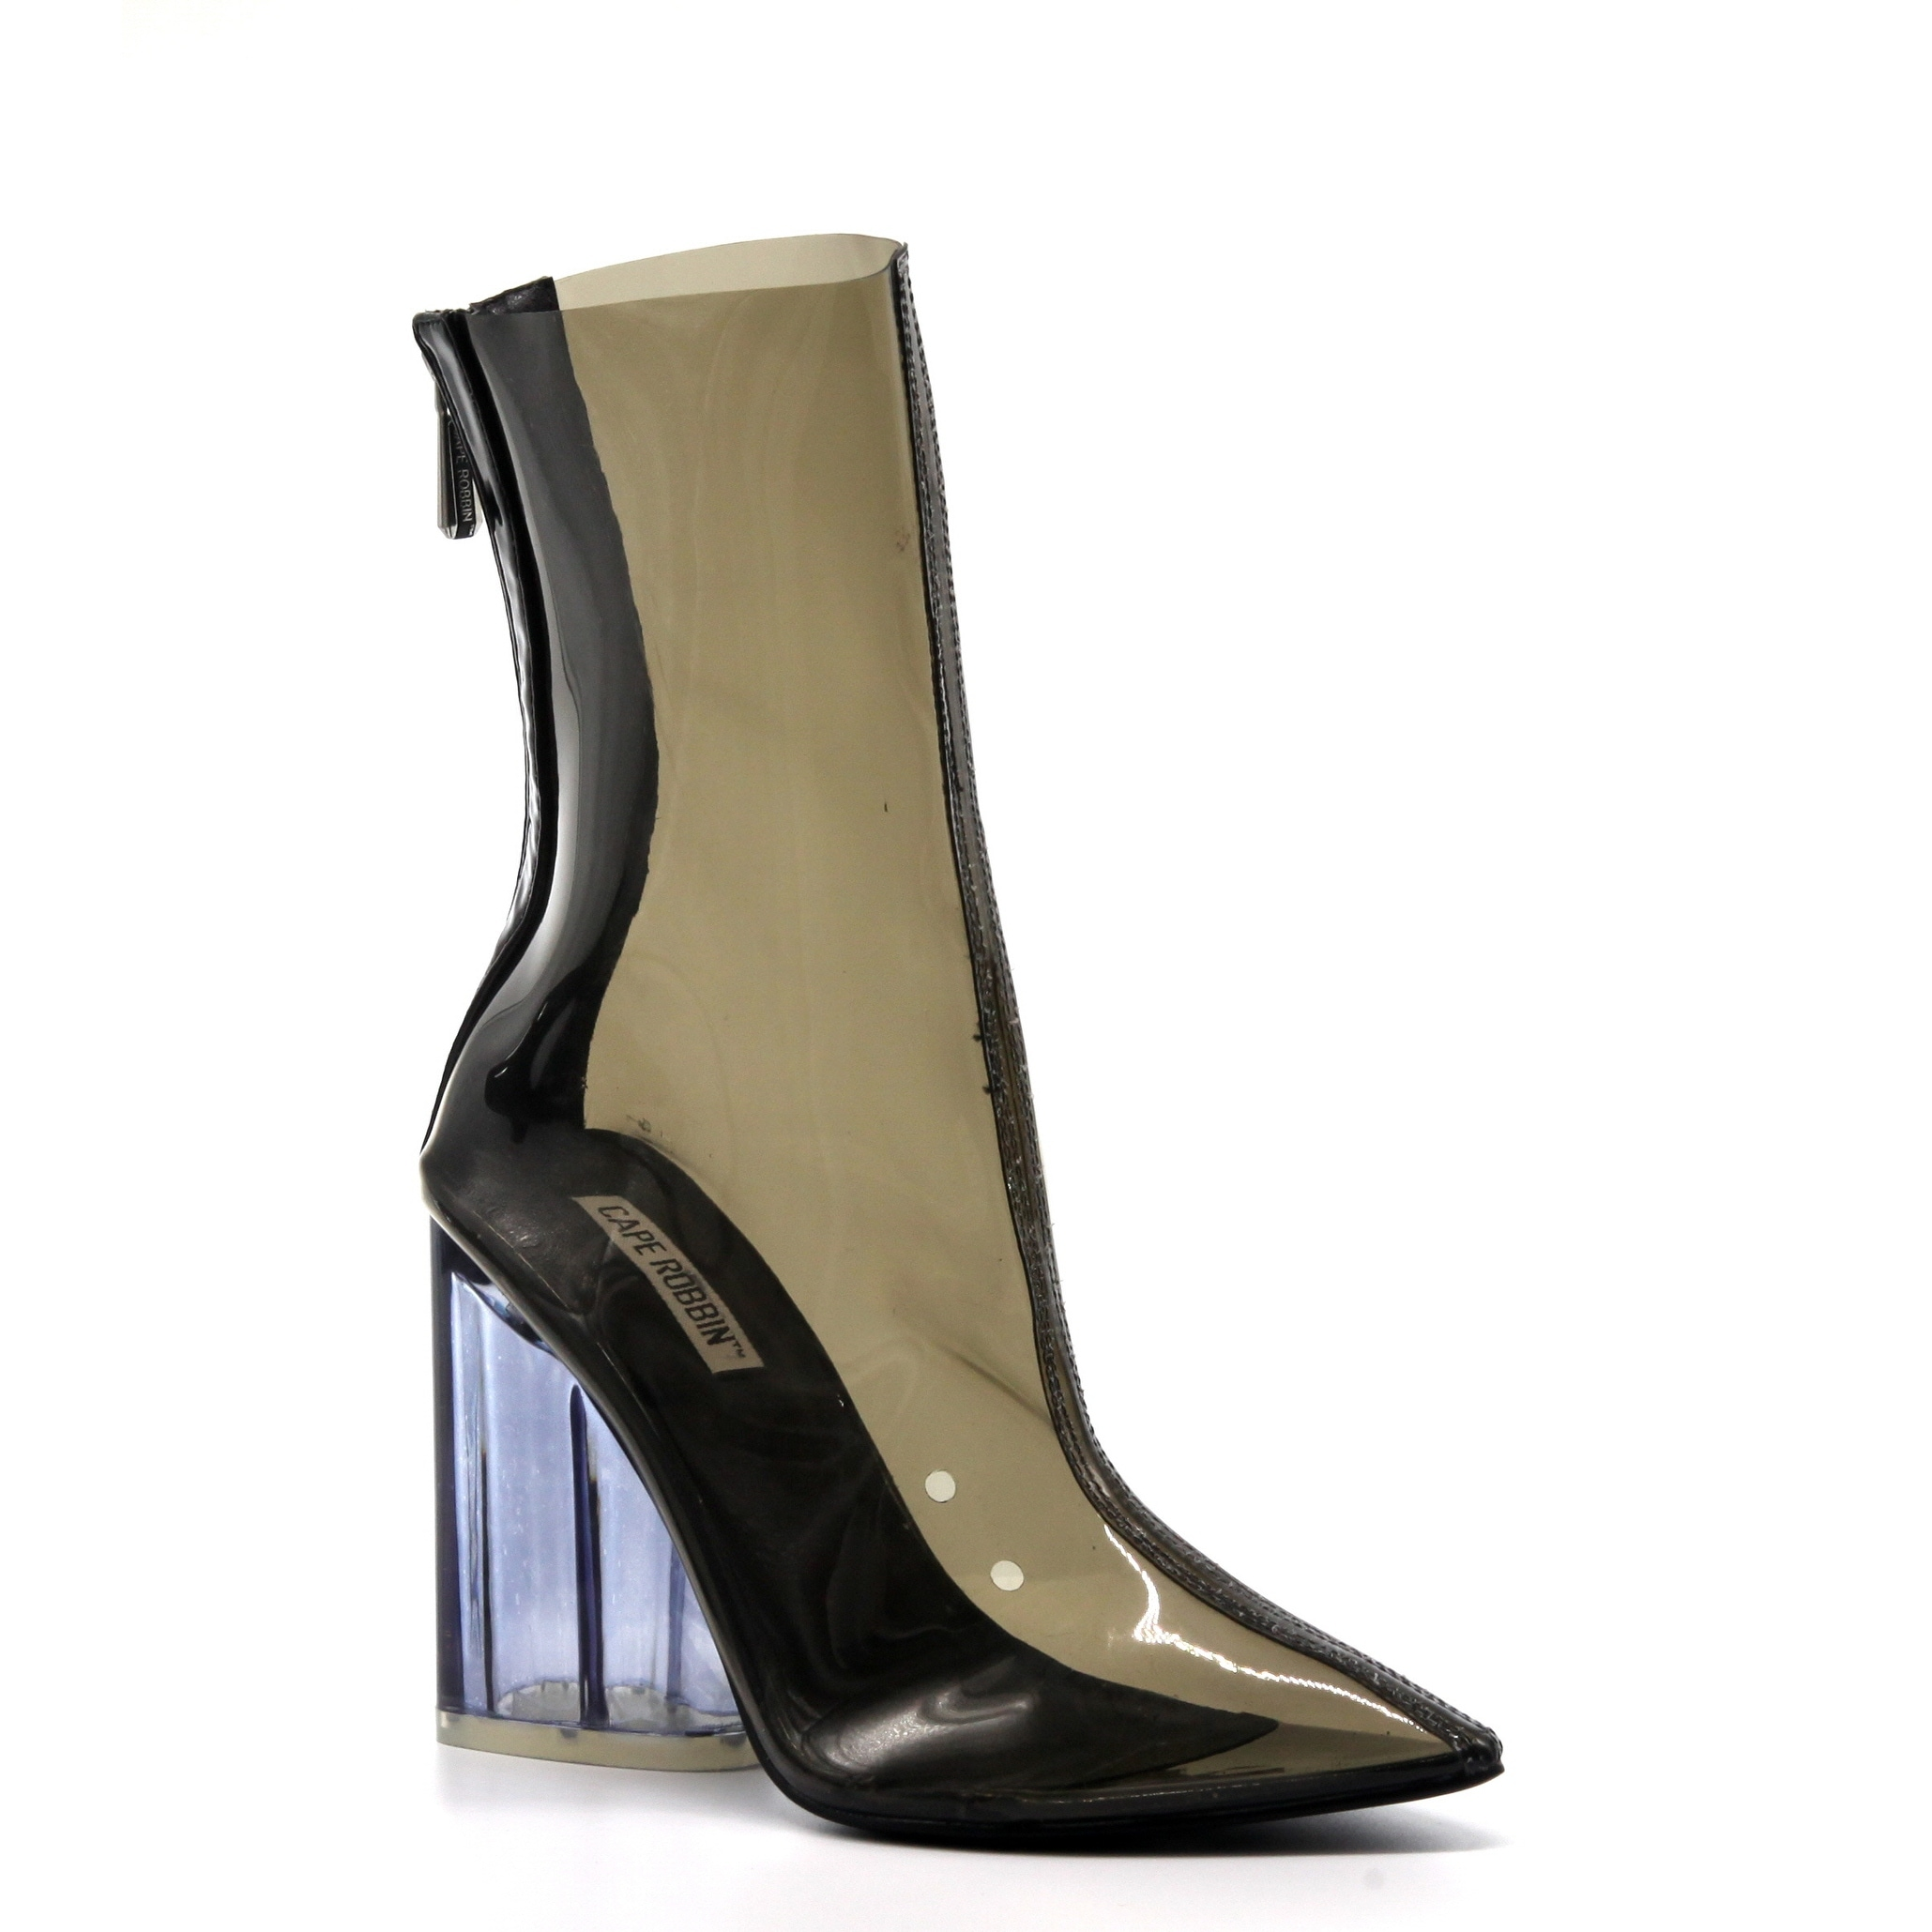 095534481bf Cape Robbin Crystal Glaze Womens Perspex Lucite Clear Pointy Toe Chunky  Heel Ankle Boots